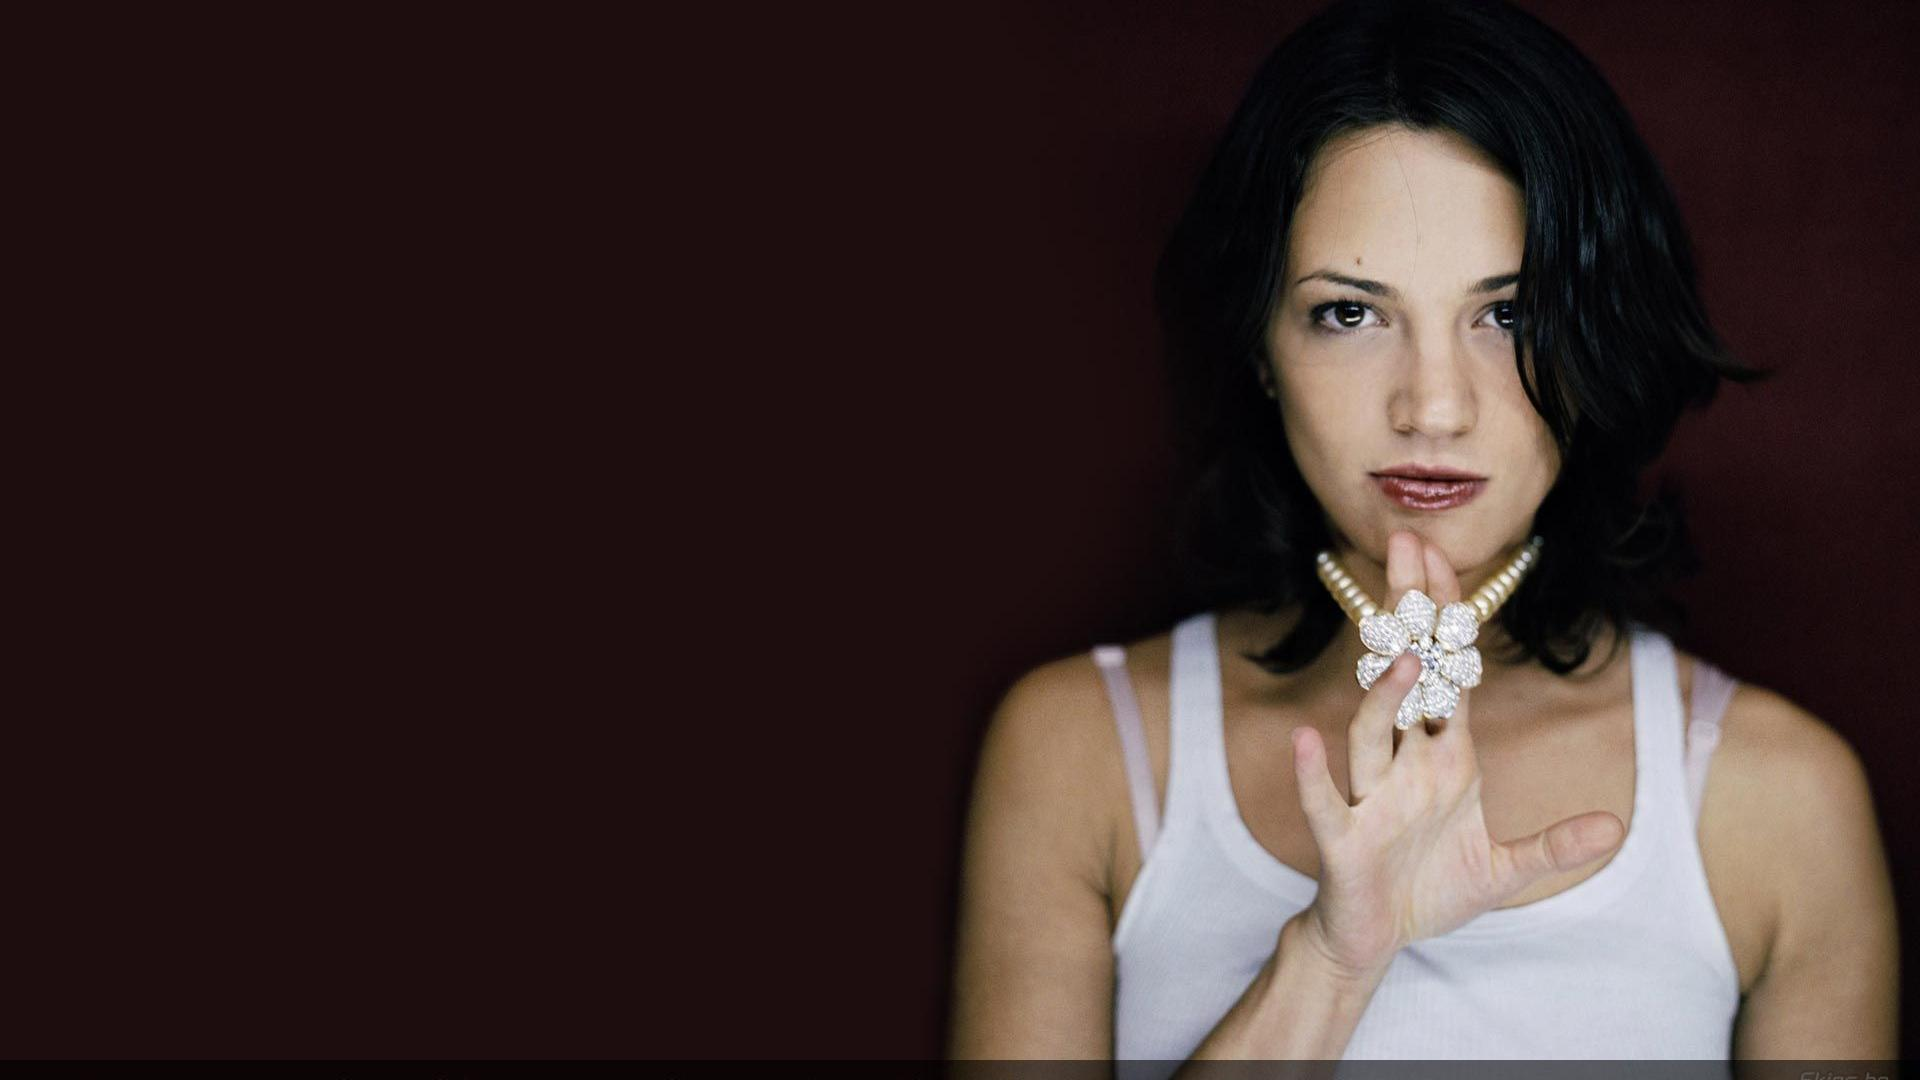 1920x1080 - Asia Argento Wallpapers 33